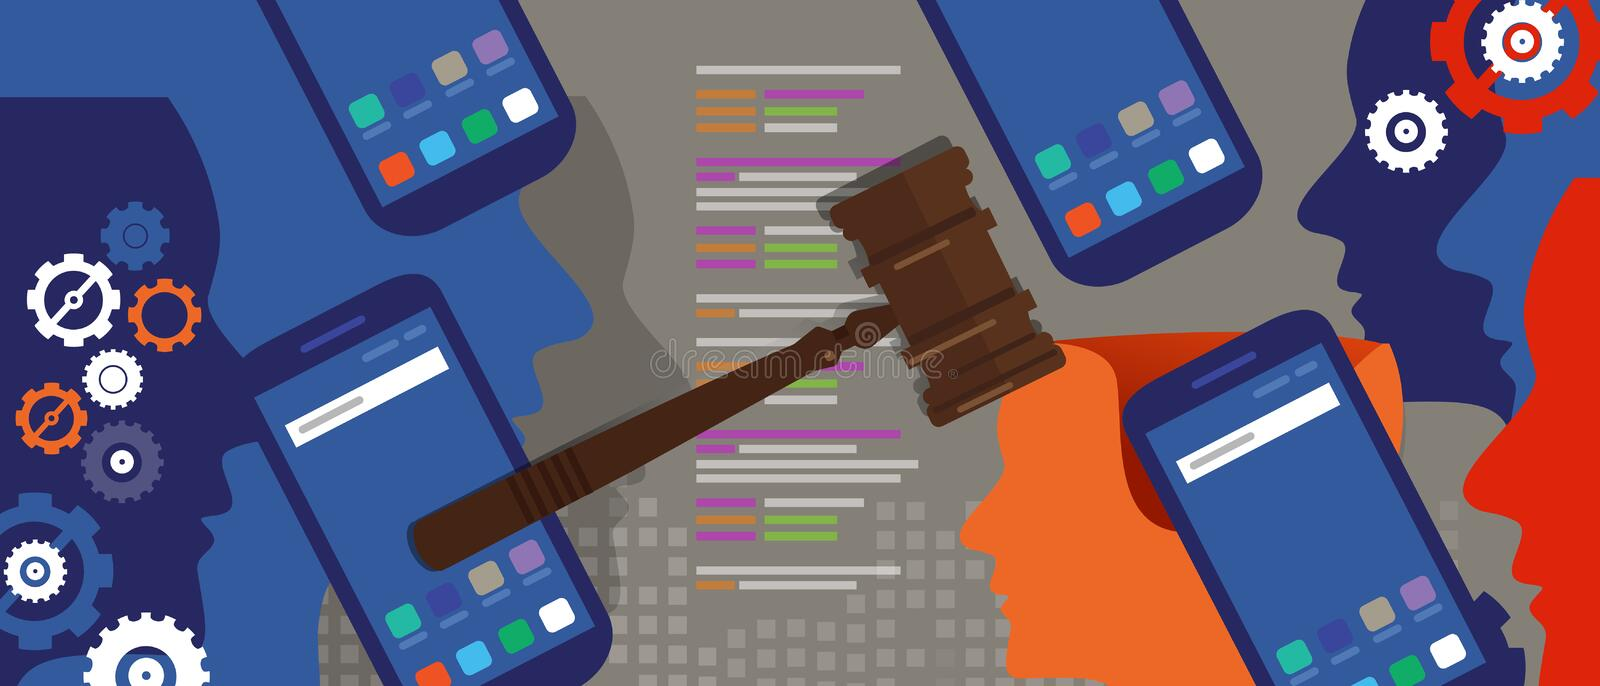 Information technology internet digital justice law verdict case legal gavel wooden hammer crime court auction symbol. Vector vector illustration